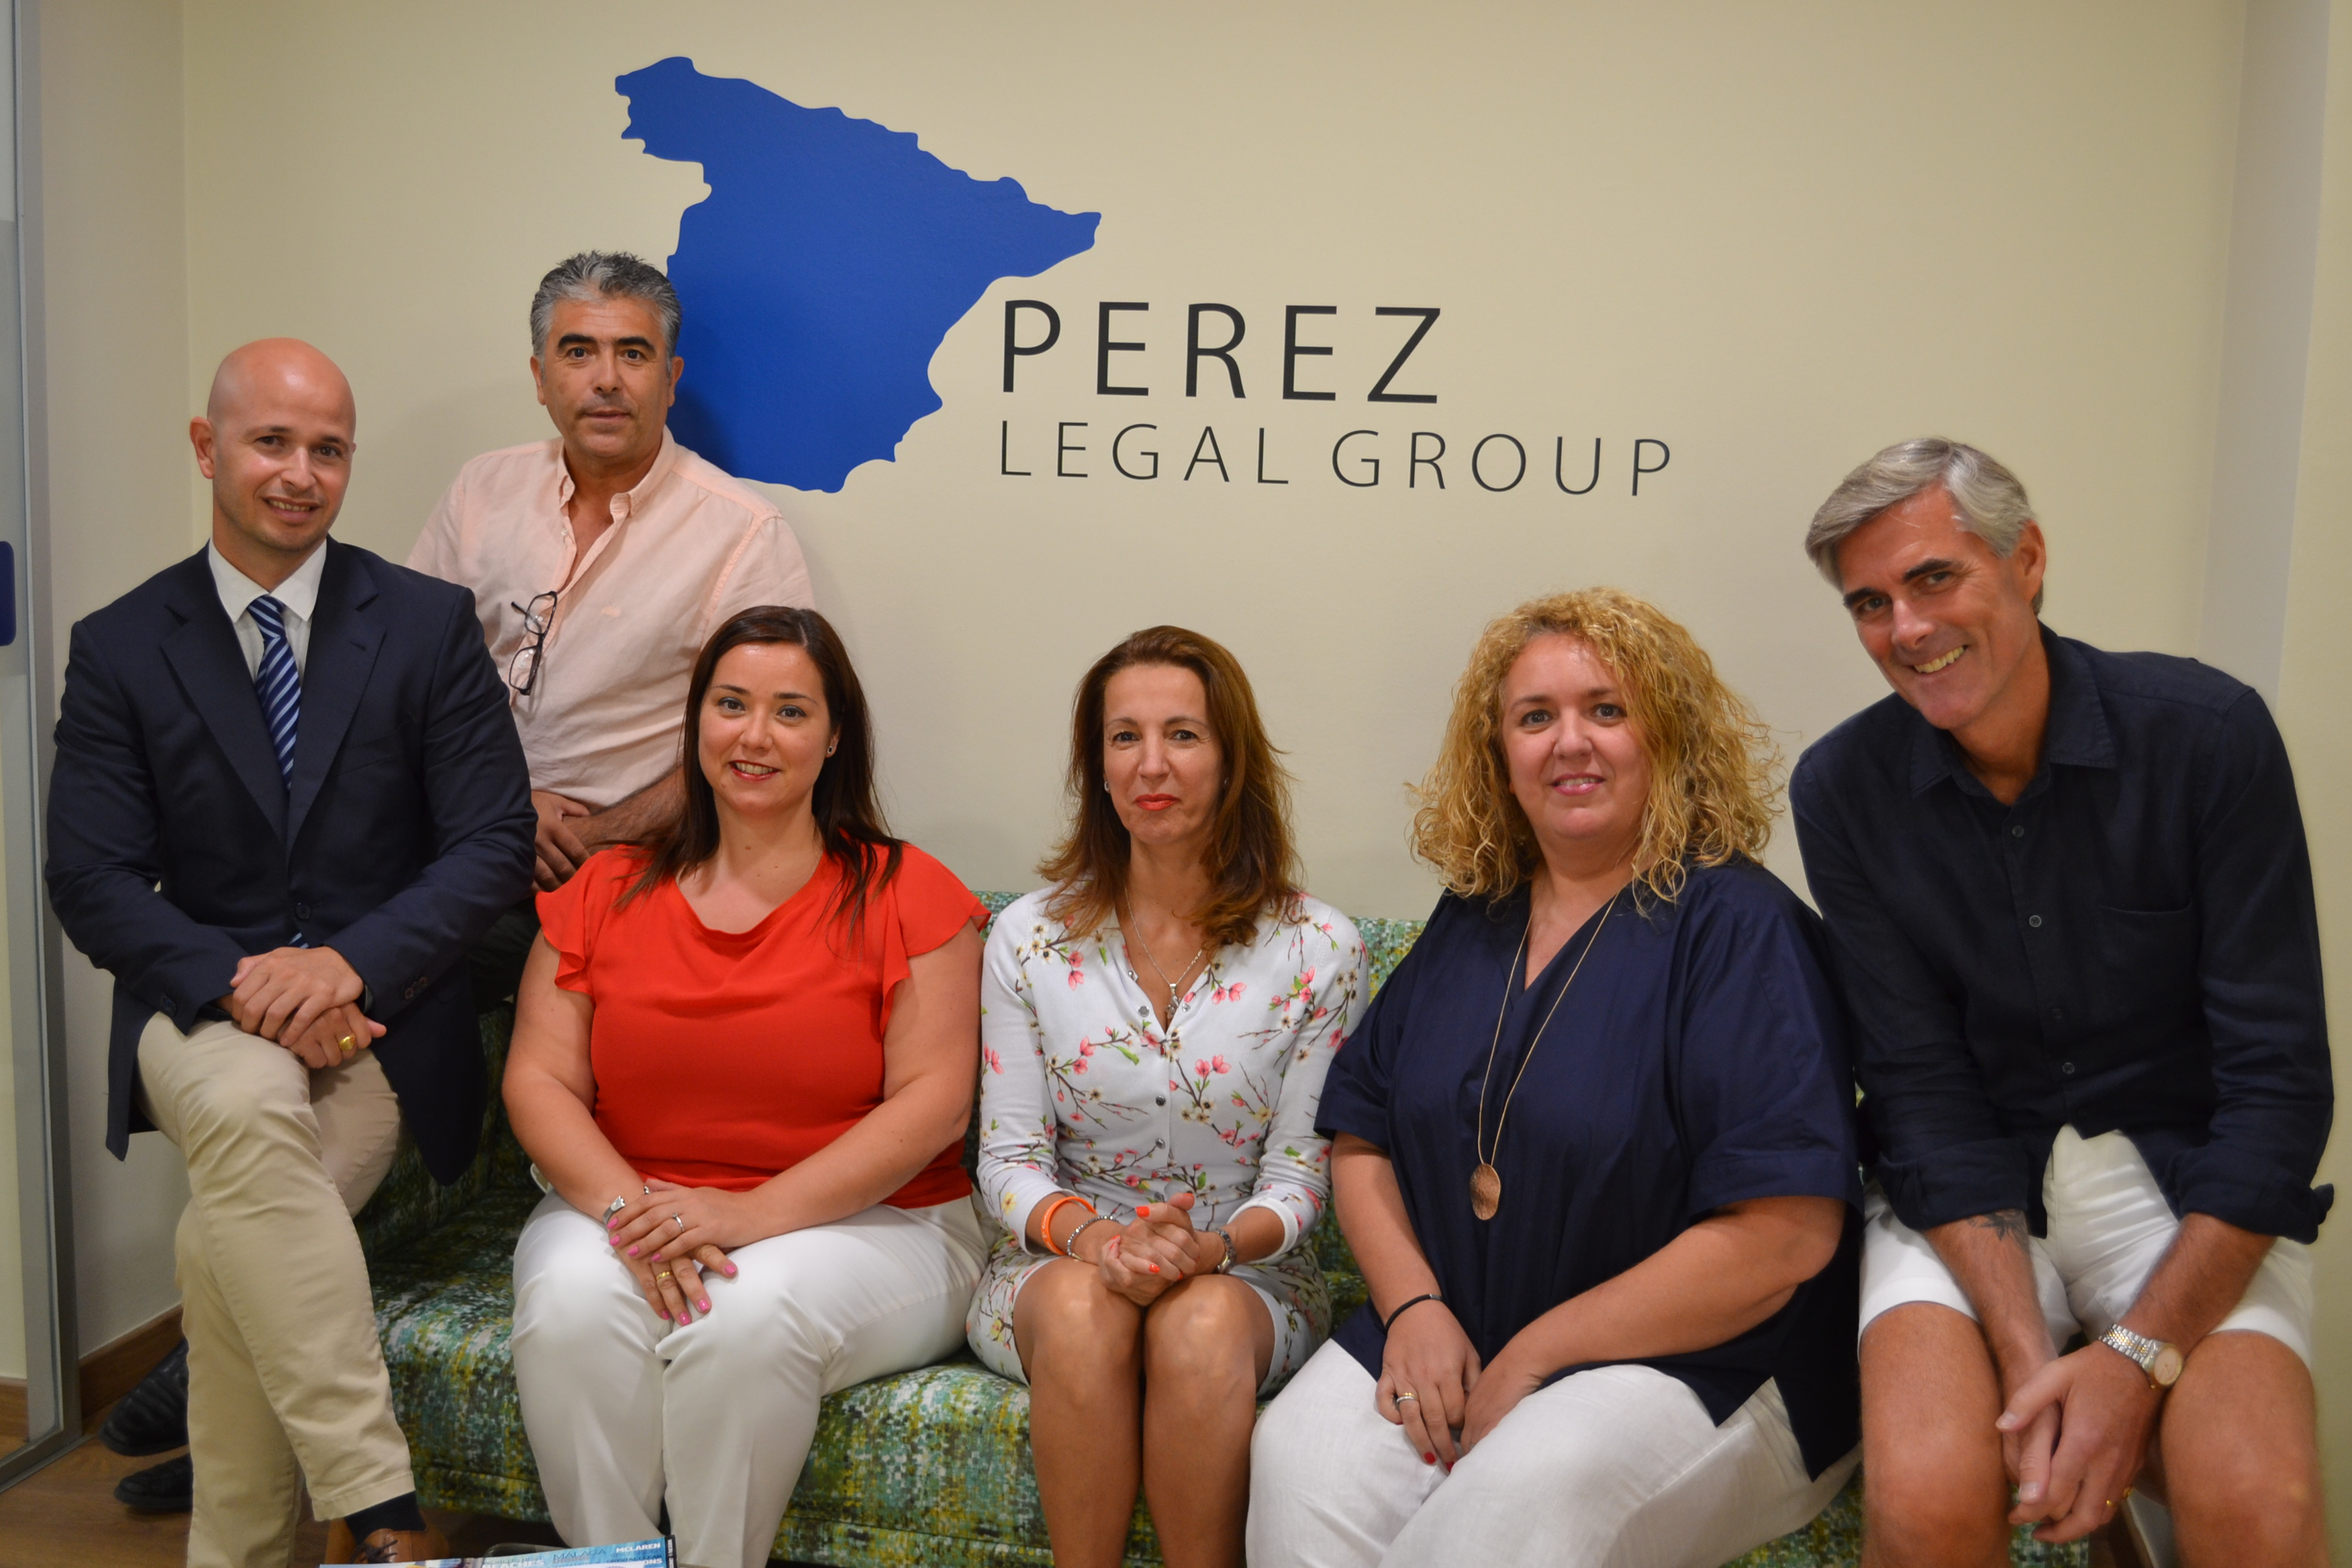 Perez Legal Group